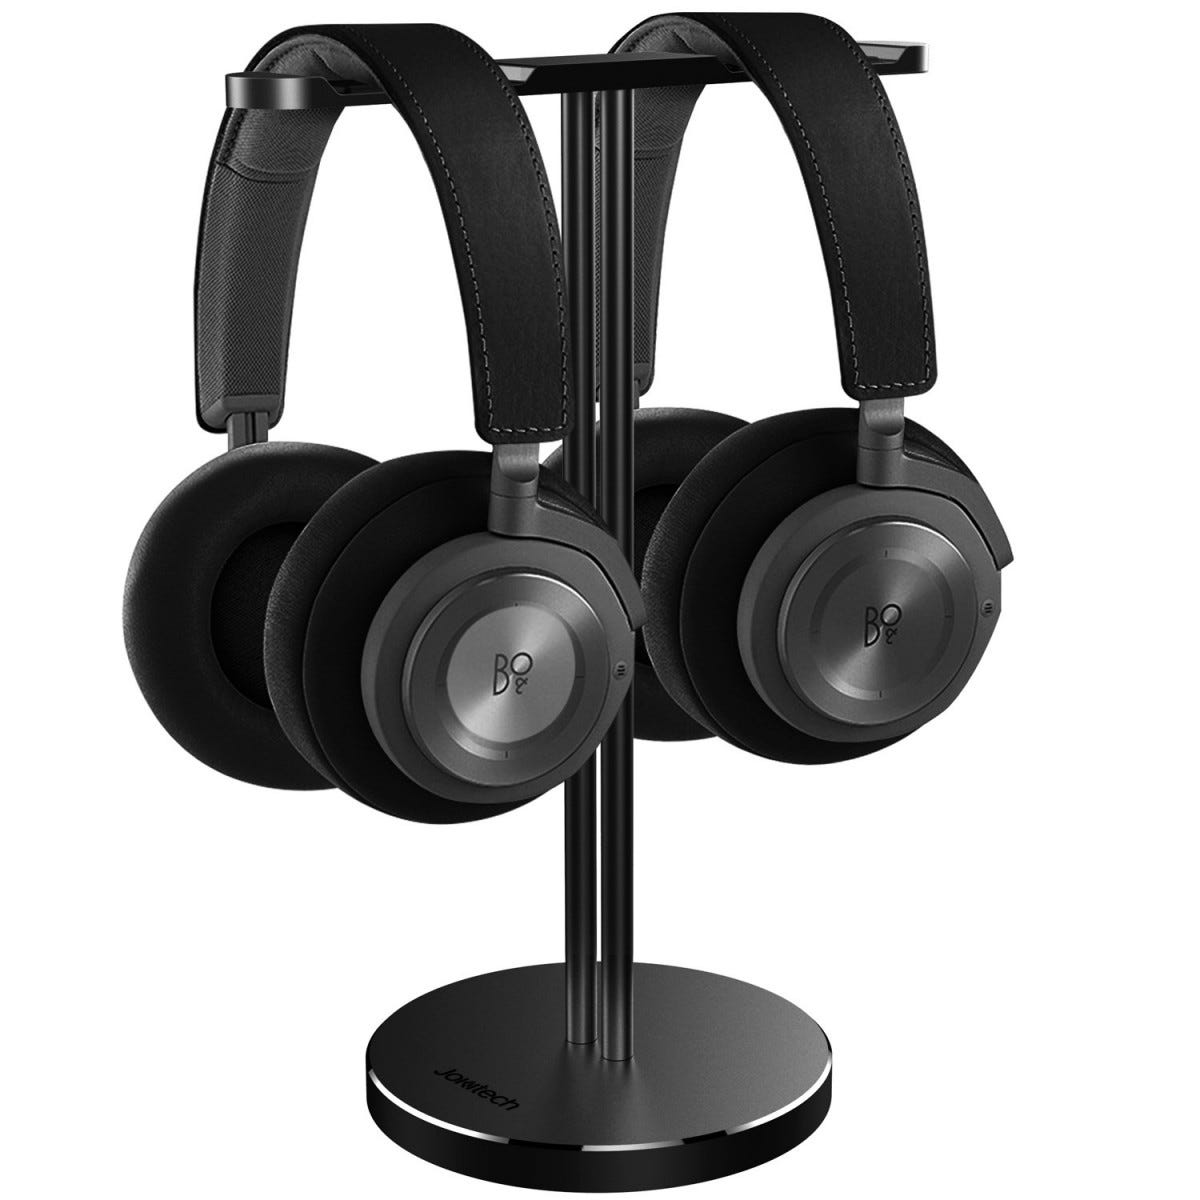 Jokitech dual holder headphone stand for two full size sets of headphones